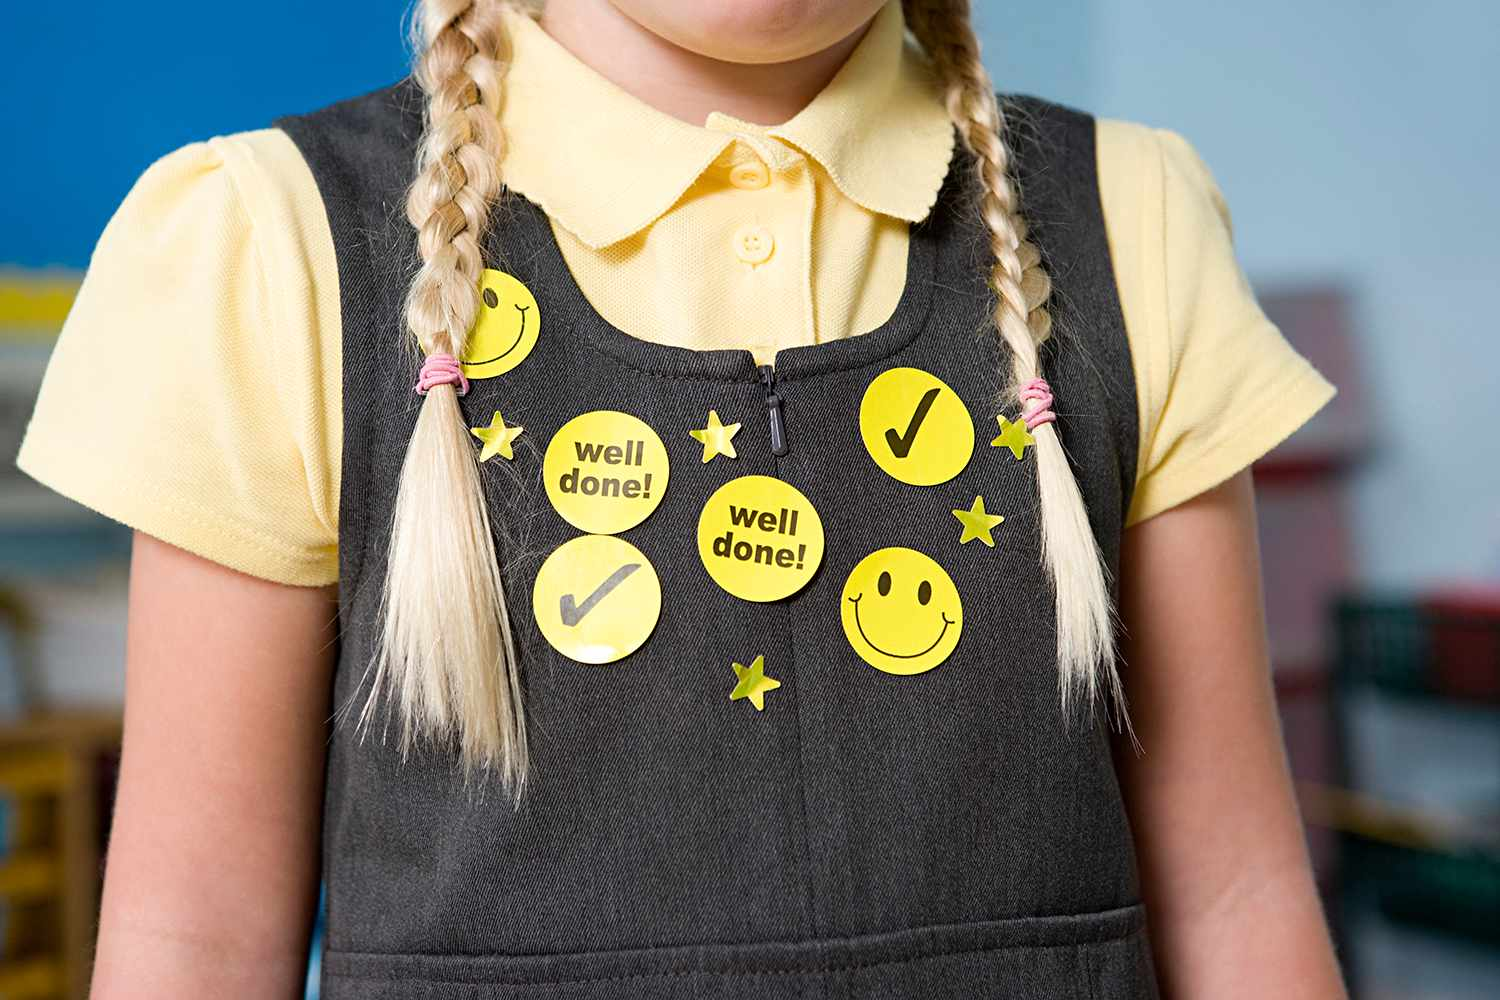 Stickers on a girls pinafore